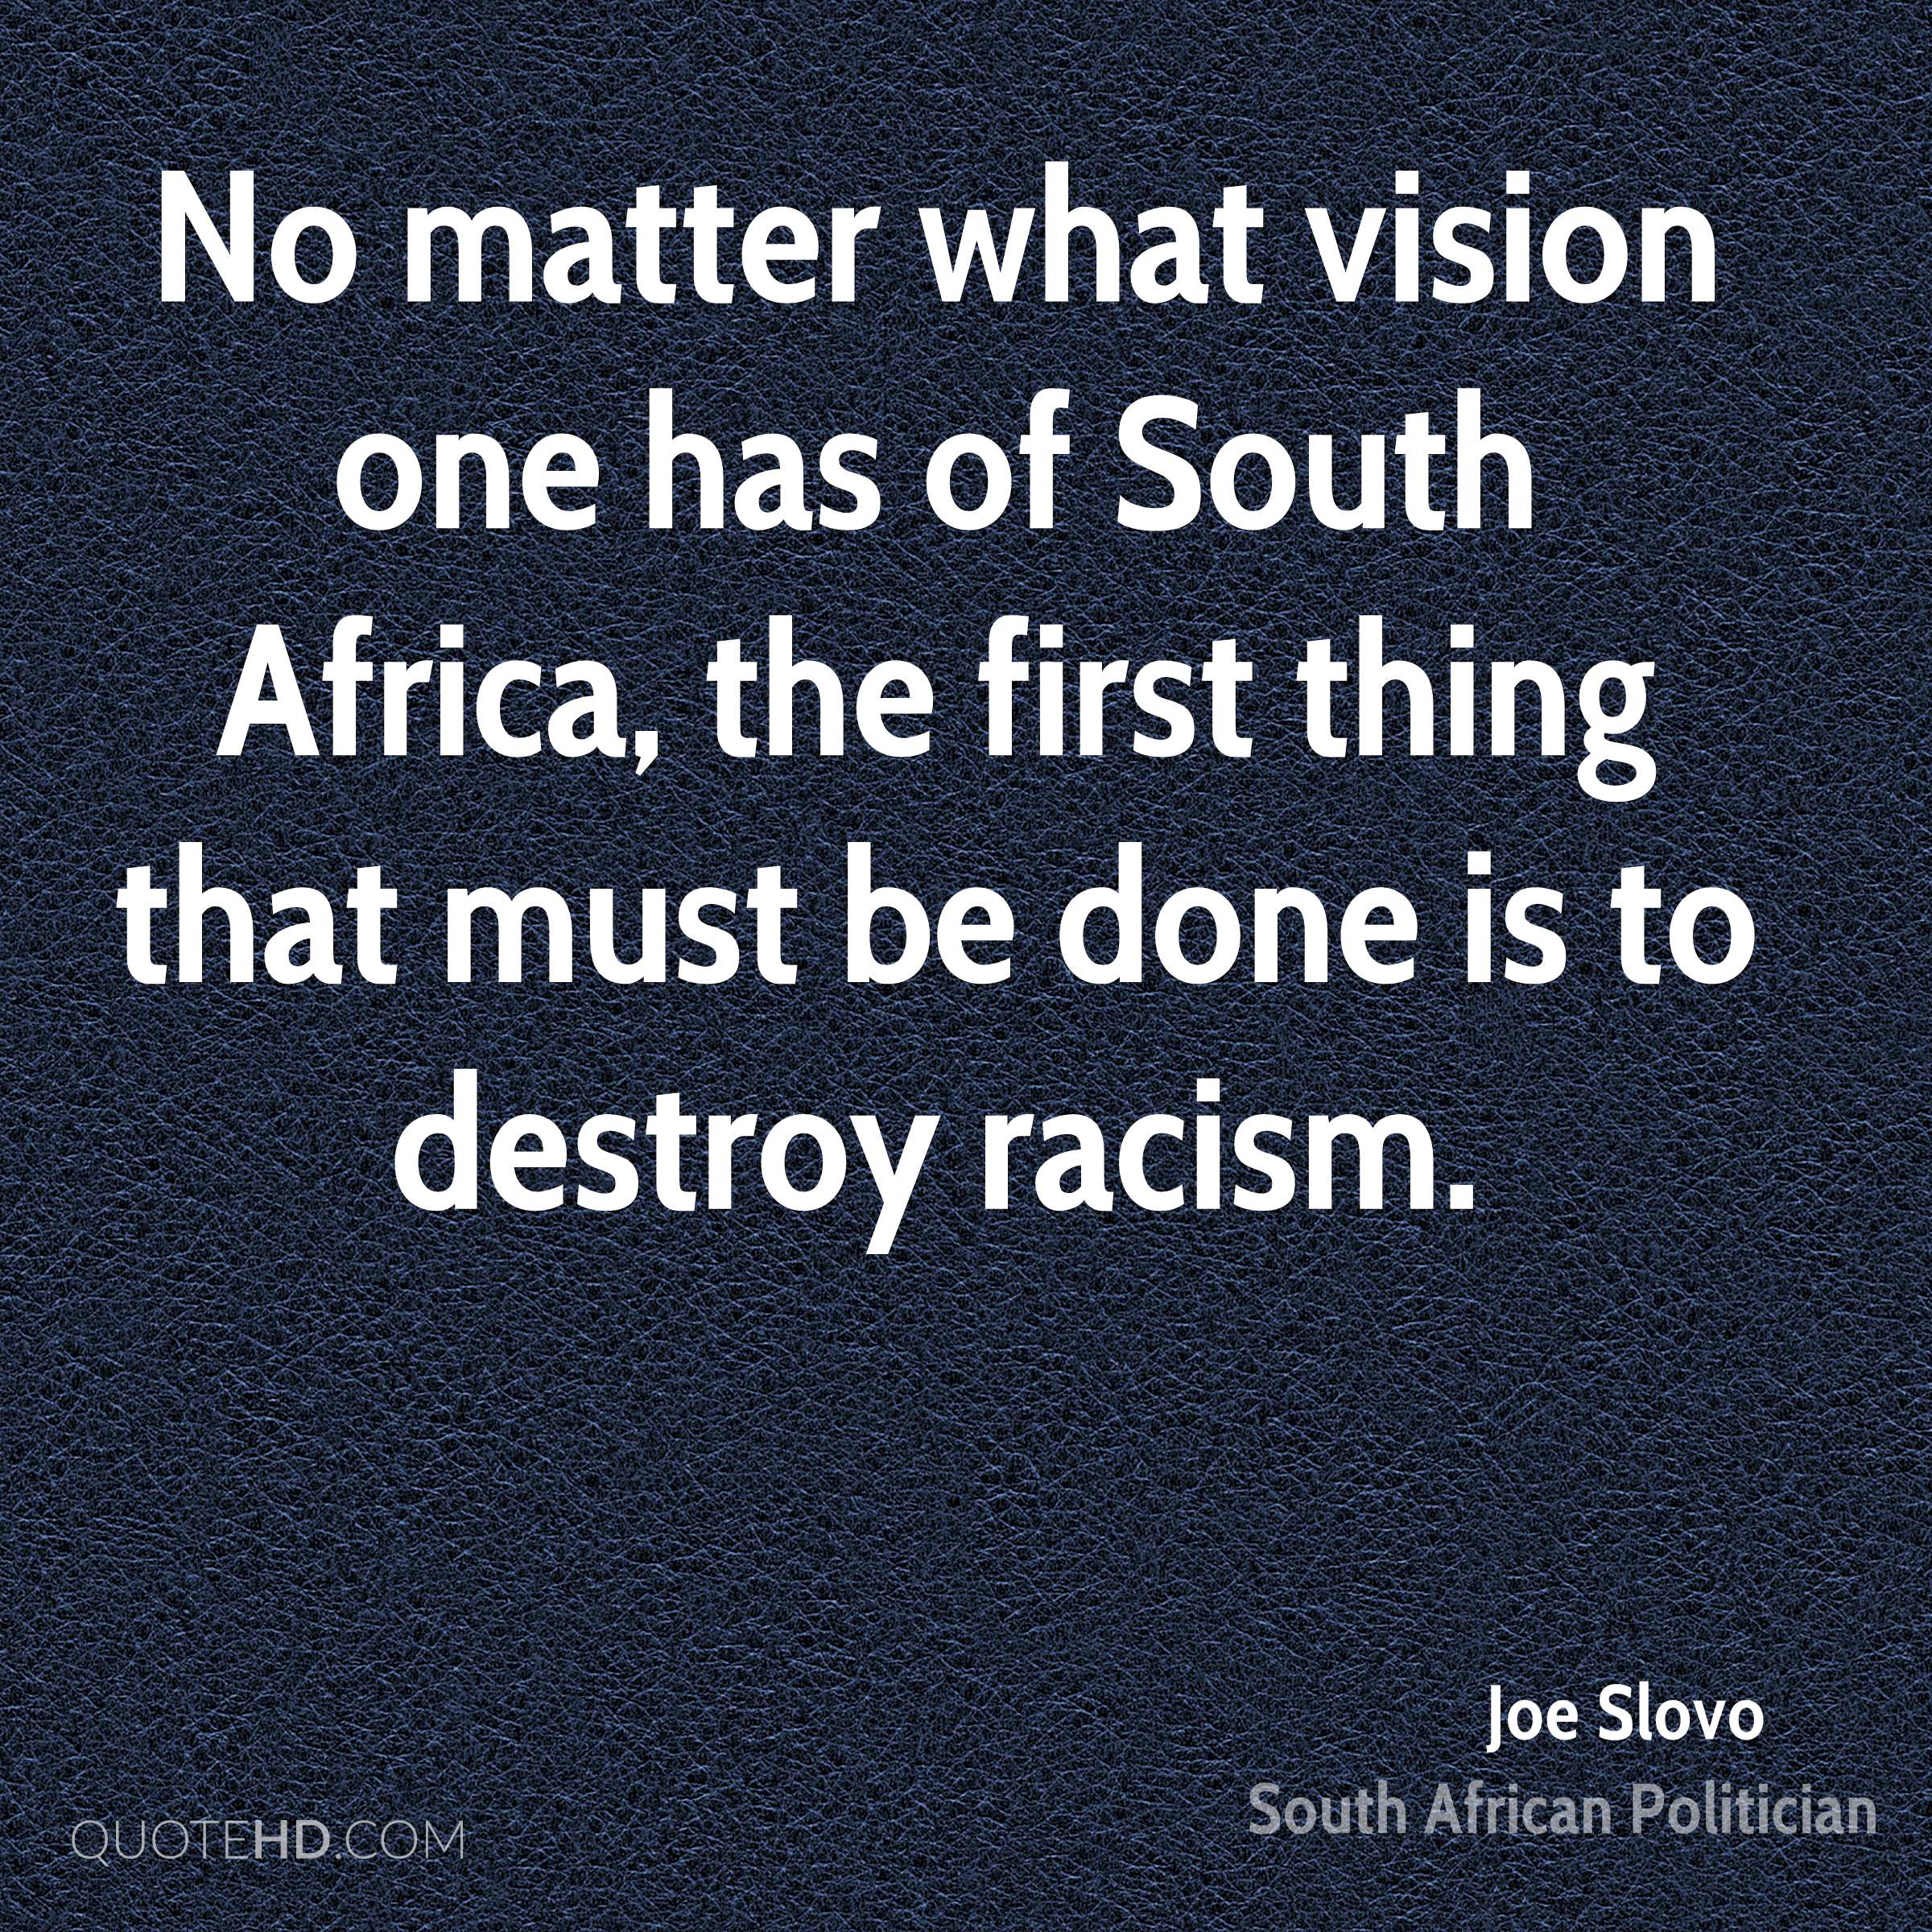 No matter what vision one has of South Africa, the first thing that must be done is to destroy racism.